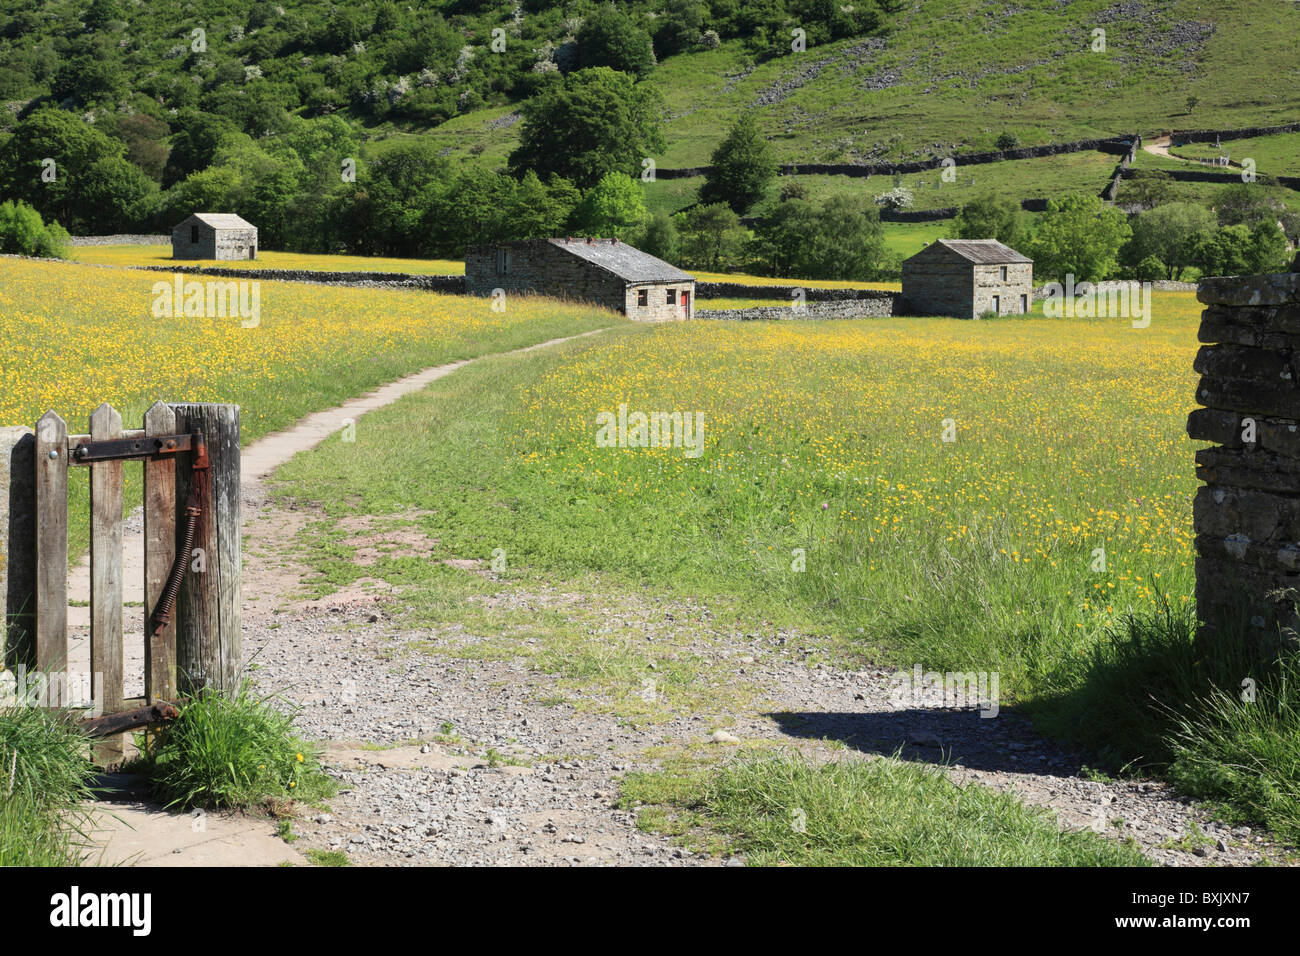 Buttercup Meadow near Muker in the Yorkshire Dales National Park - Stock Image